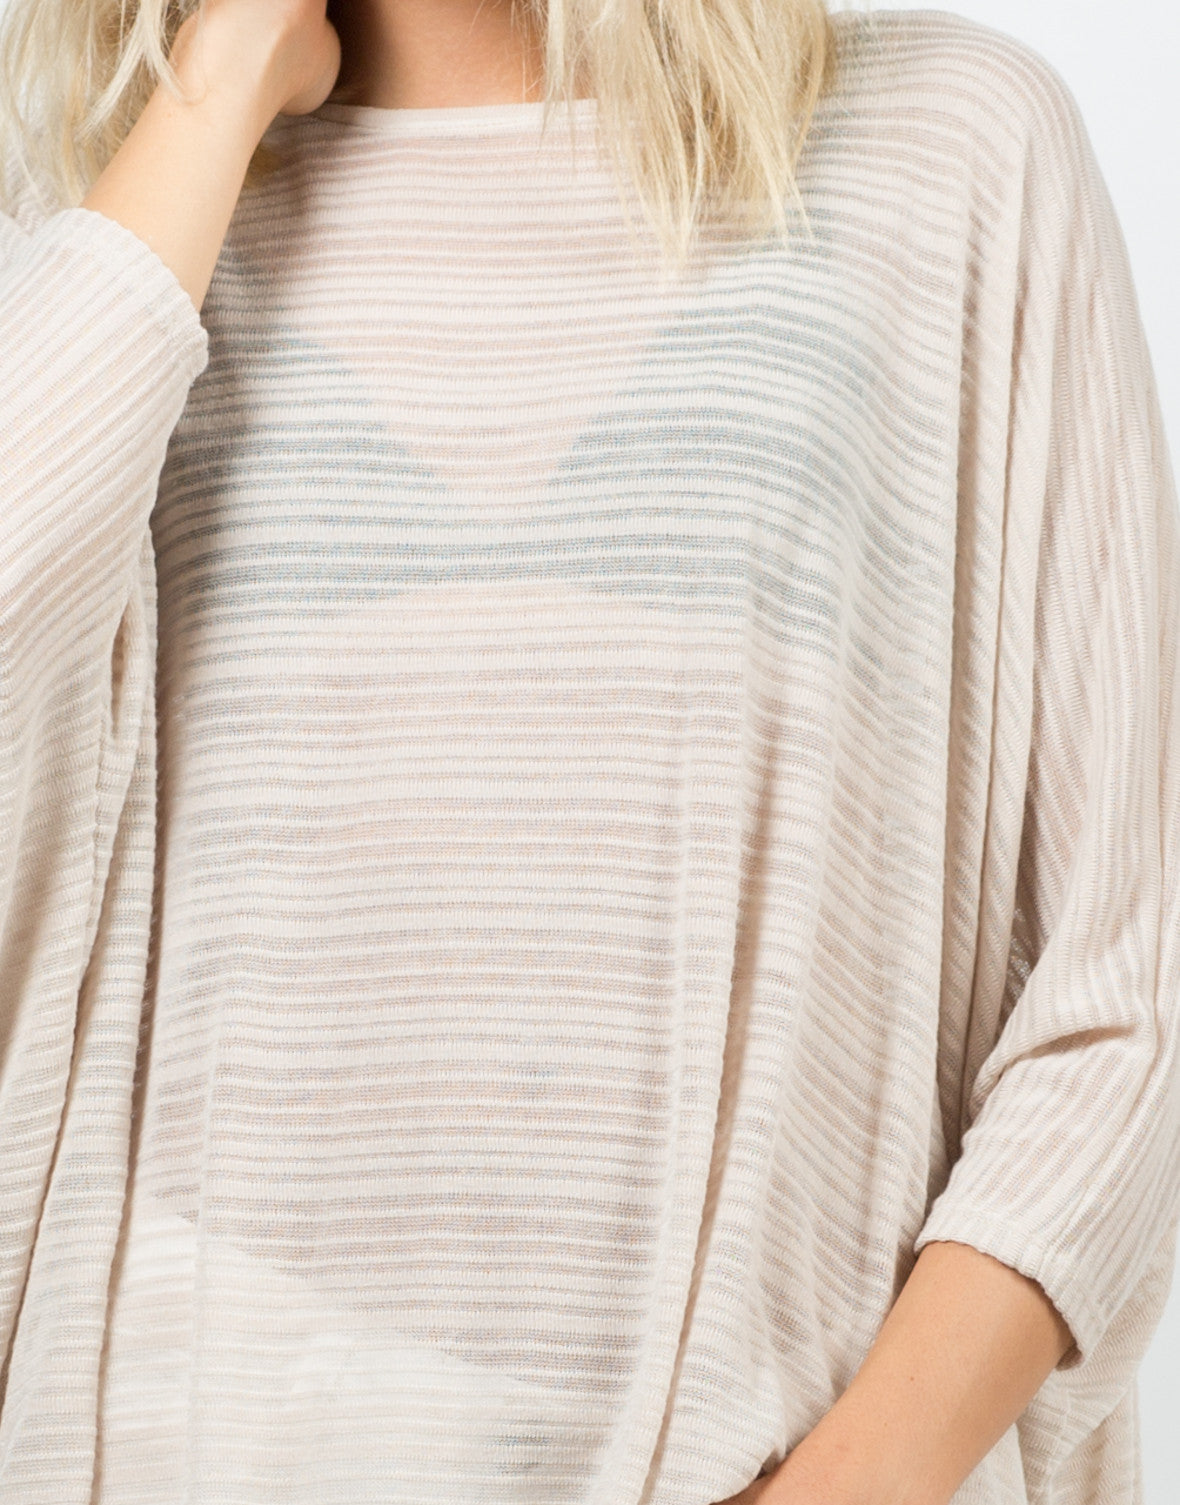 Detail of Inbetween the Lines Top